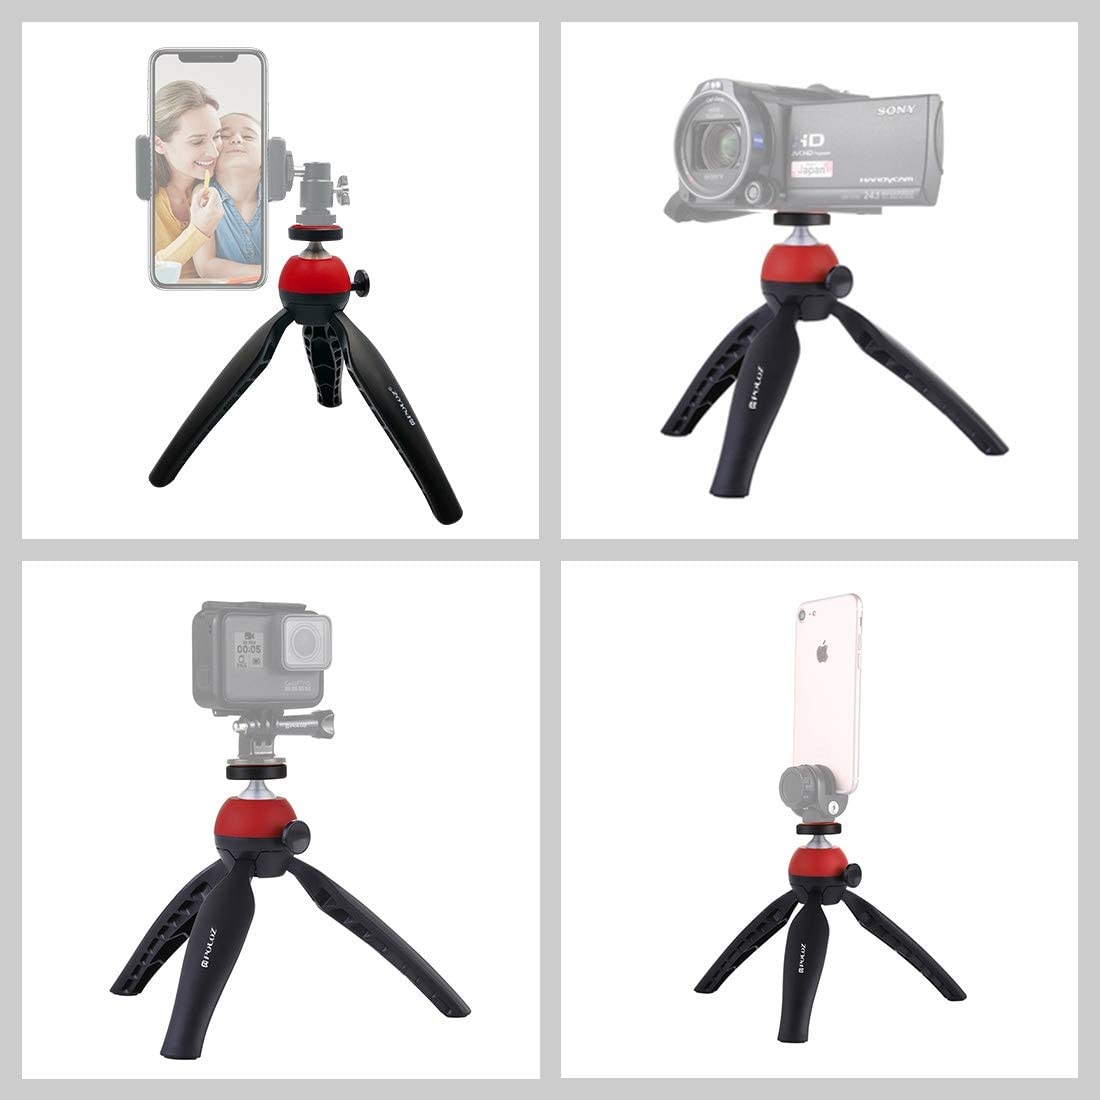 YANTAIANJANE Camera Accessories Pocket Mini Tripod Mount with 360 Degree Ball Head for Smartphones Color : Yellow Blue DSLR Cameras GoPro